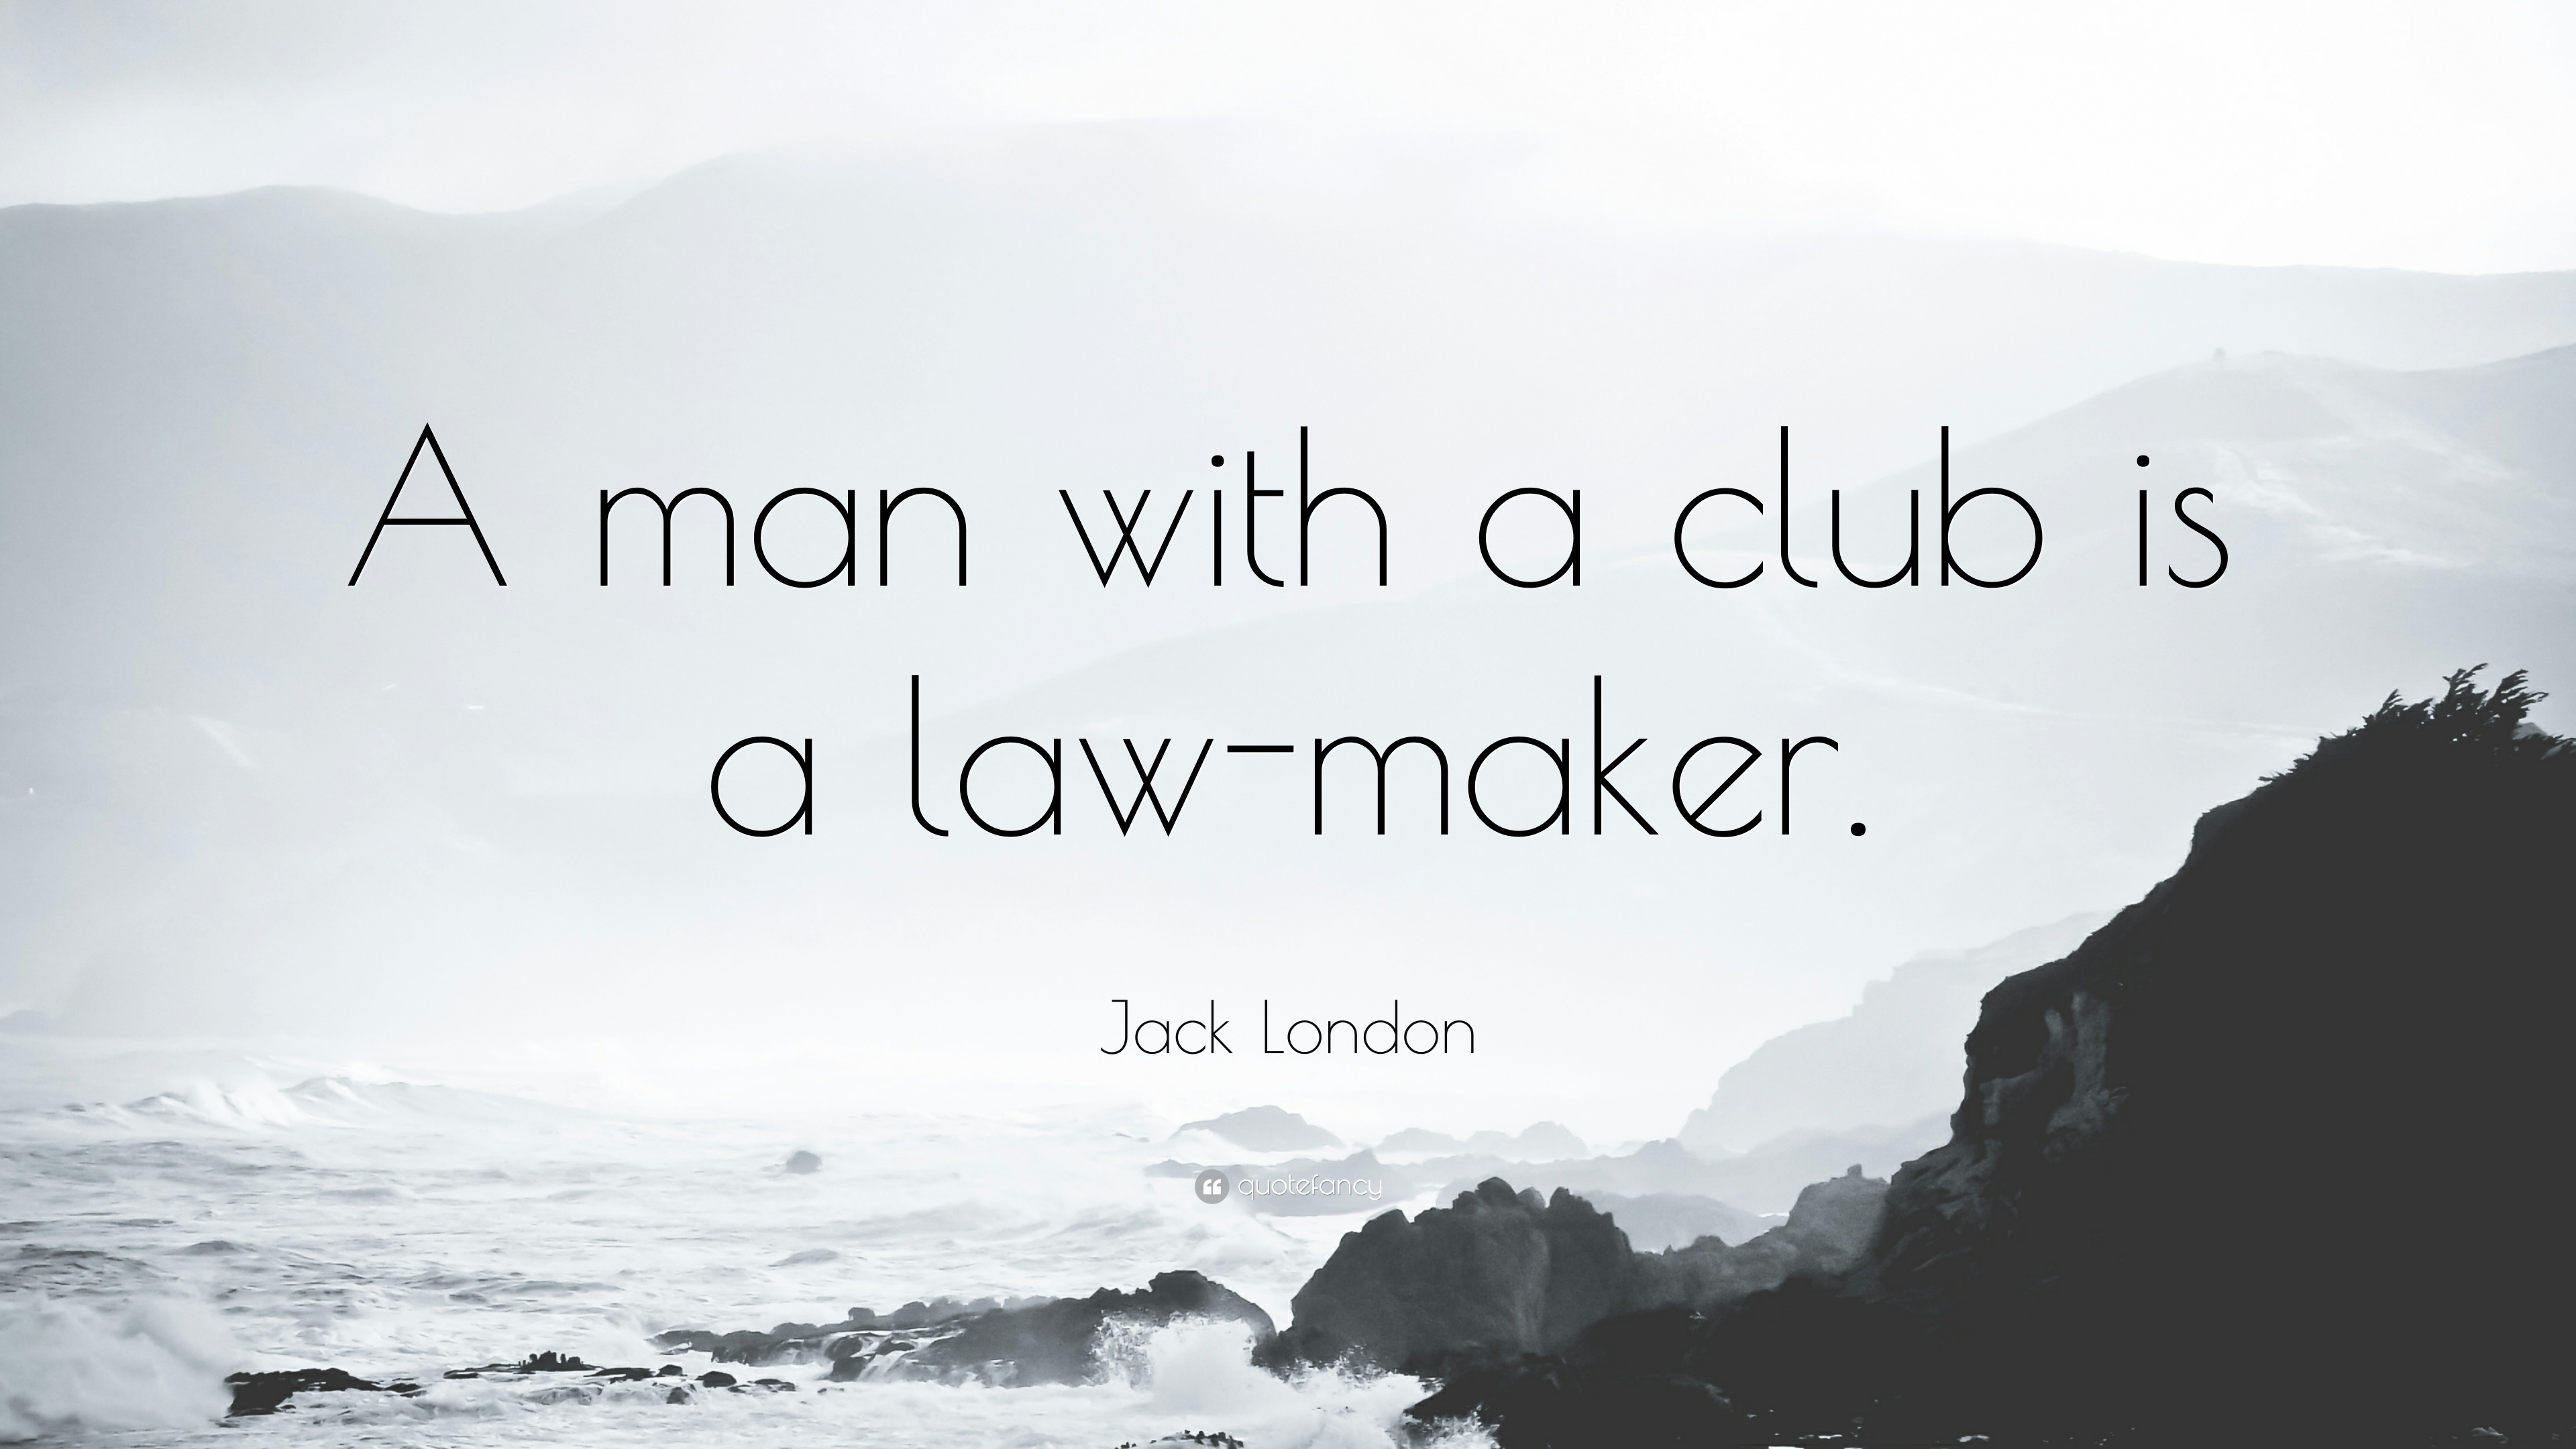 jack london quote a man with a club is a law maker 7 wallpapers